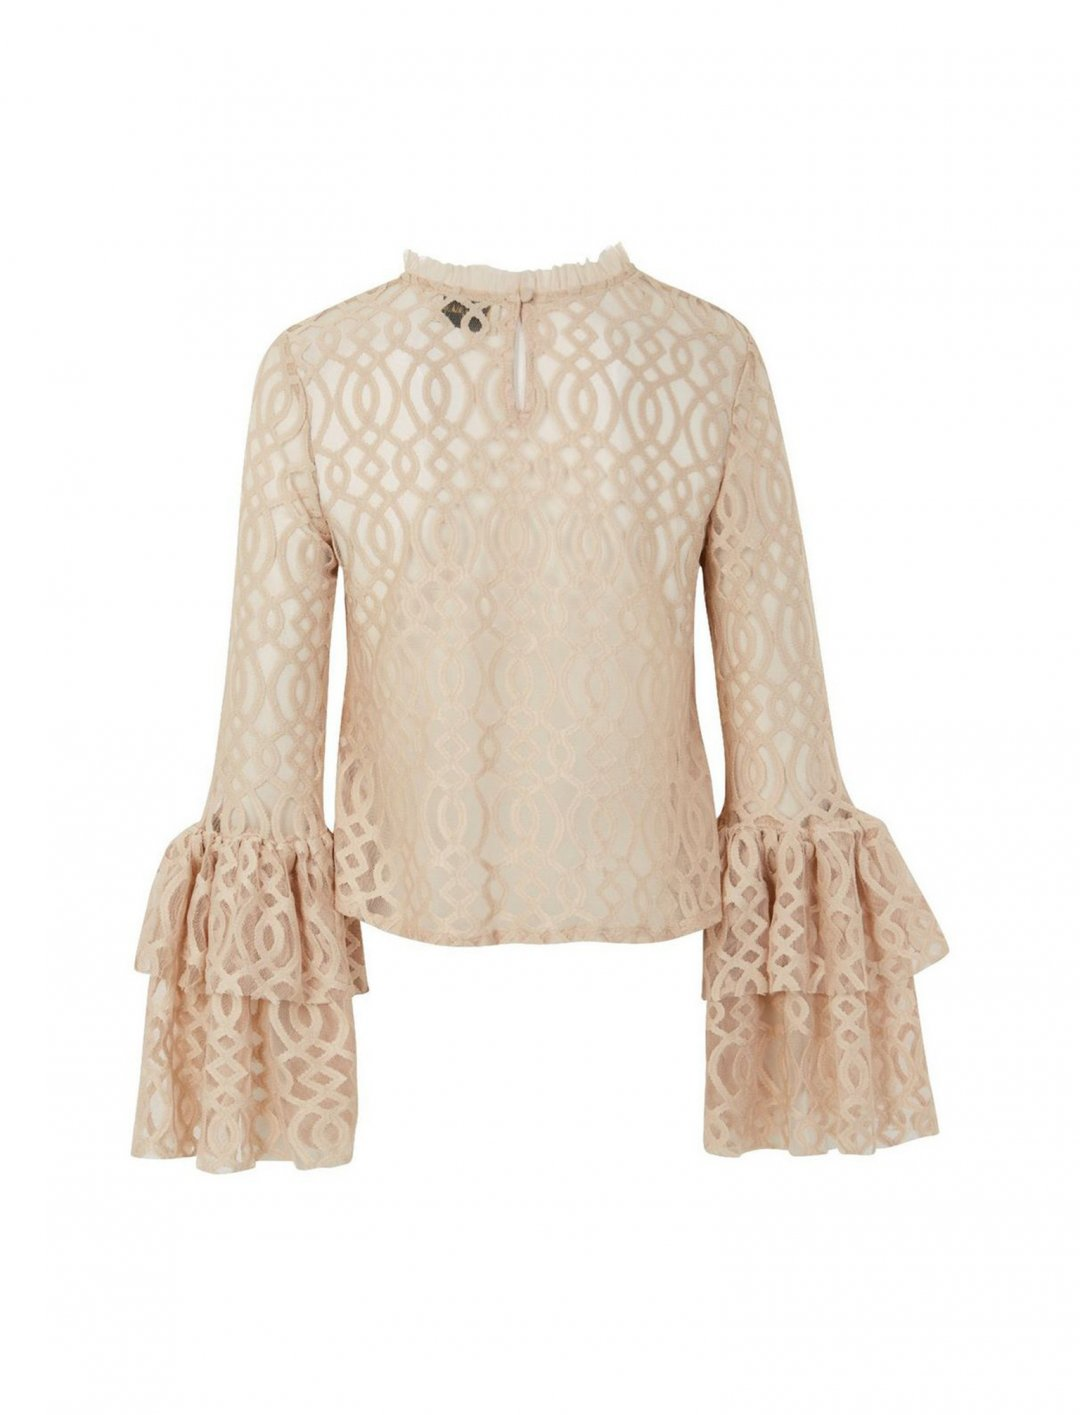 """Lace & Beads Lunette Top {""""id"""":5,""""product_section_id"""":1,""""name"""":""""Clothing"""",""""order"""":5} Lace & Beads"""